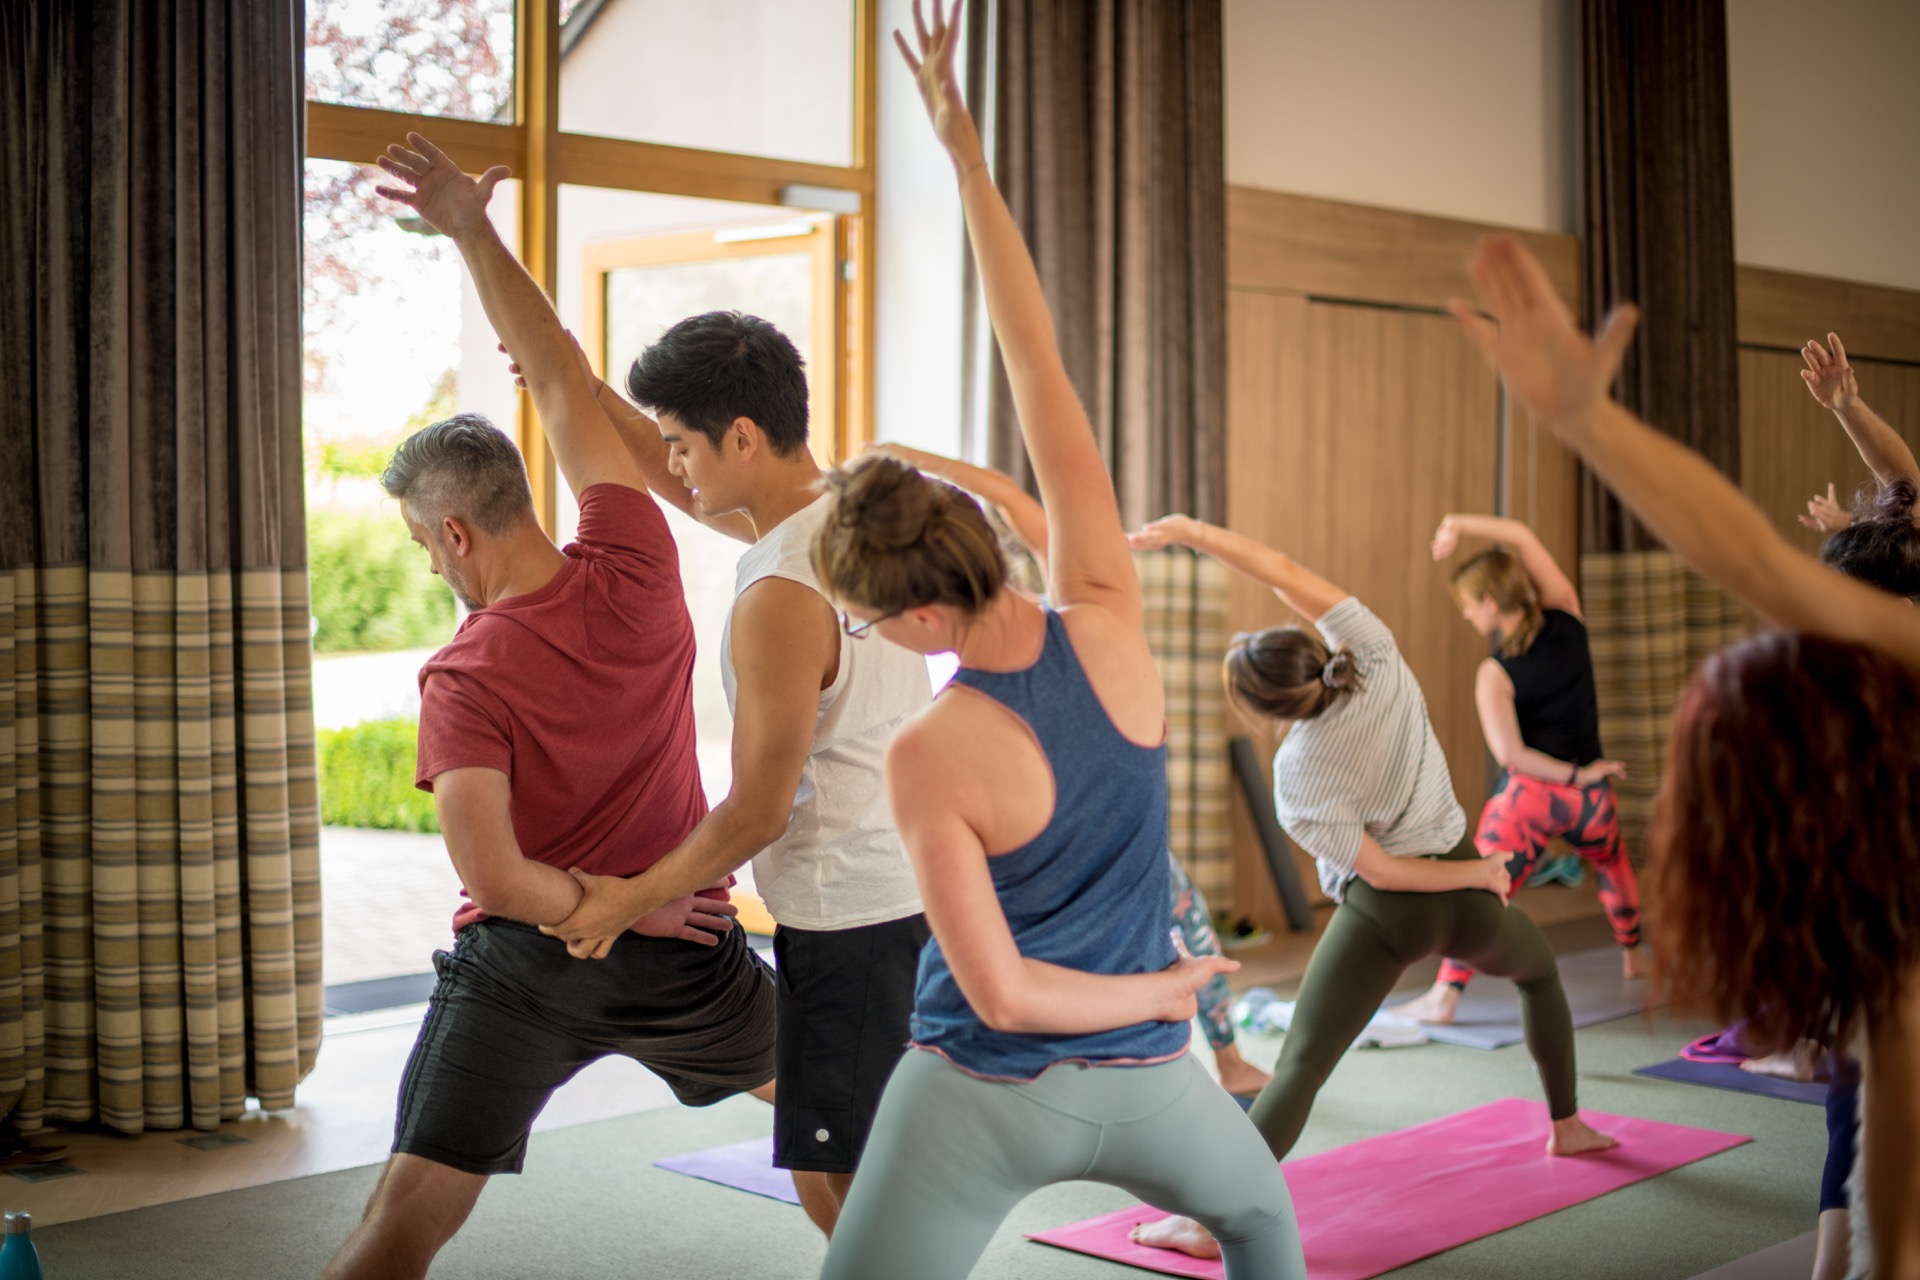 Hie-Kim-Friends-2019-Yoga-Retreat-Alina-Matis-Photography-008 - Hie Kim Yoga - Yoga Retreat - Yoga Workshops und Reisen